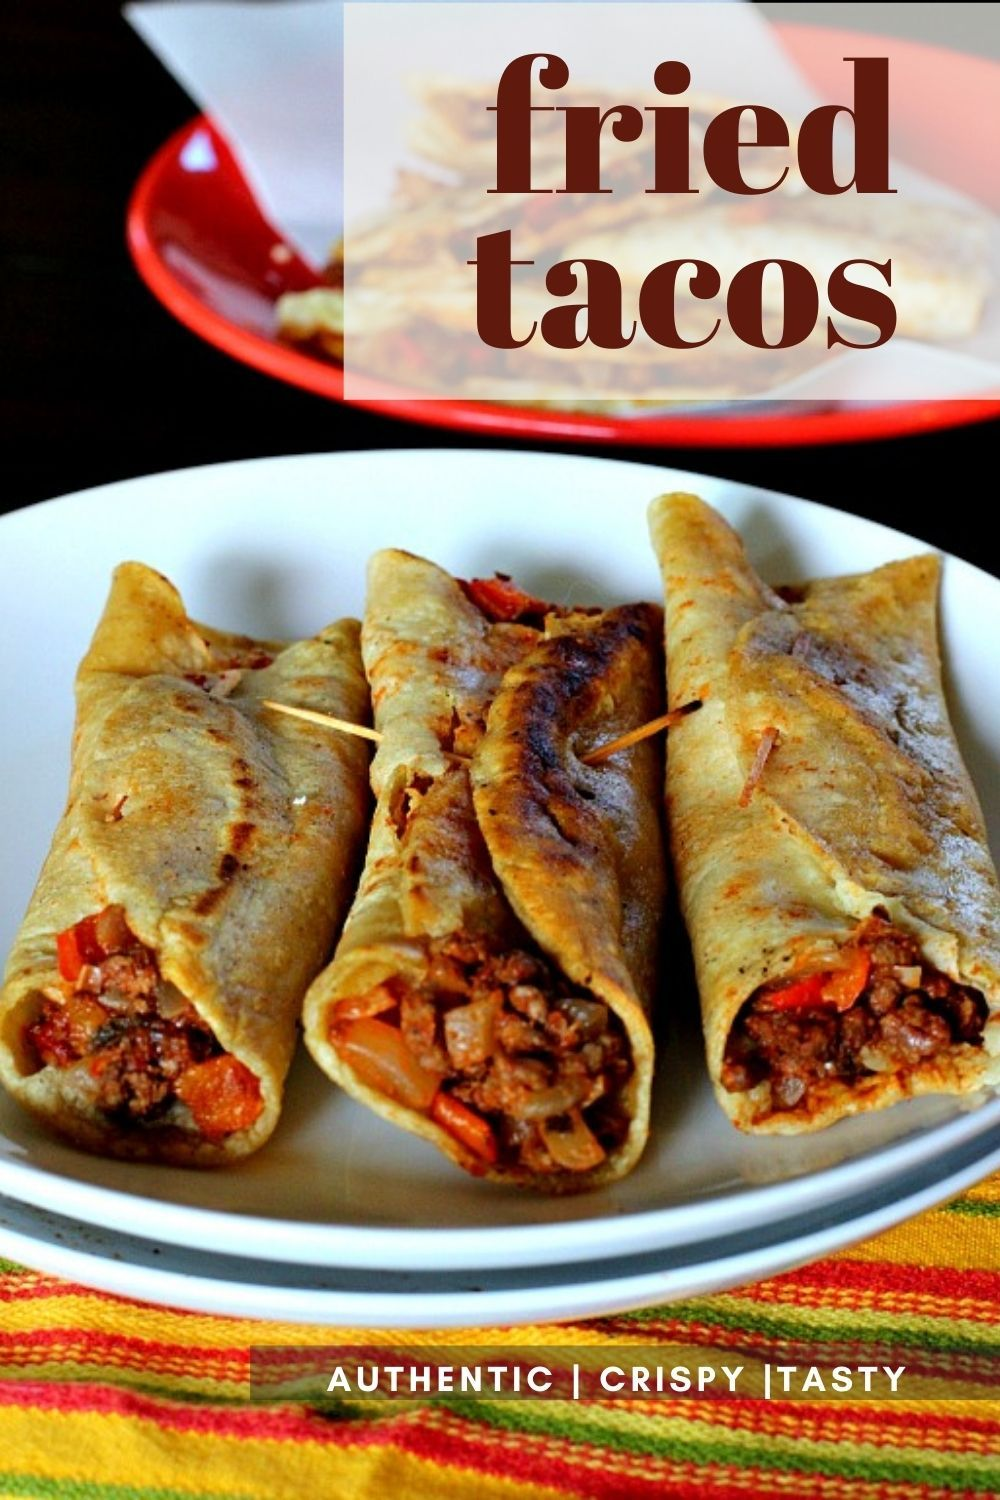 Crisp Up Your Next Taco Night With Fried Tacos Recipe In 2020 Fried Tacos Mexican Food Recipes Authentic Mexican Food Recipes